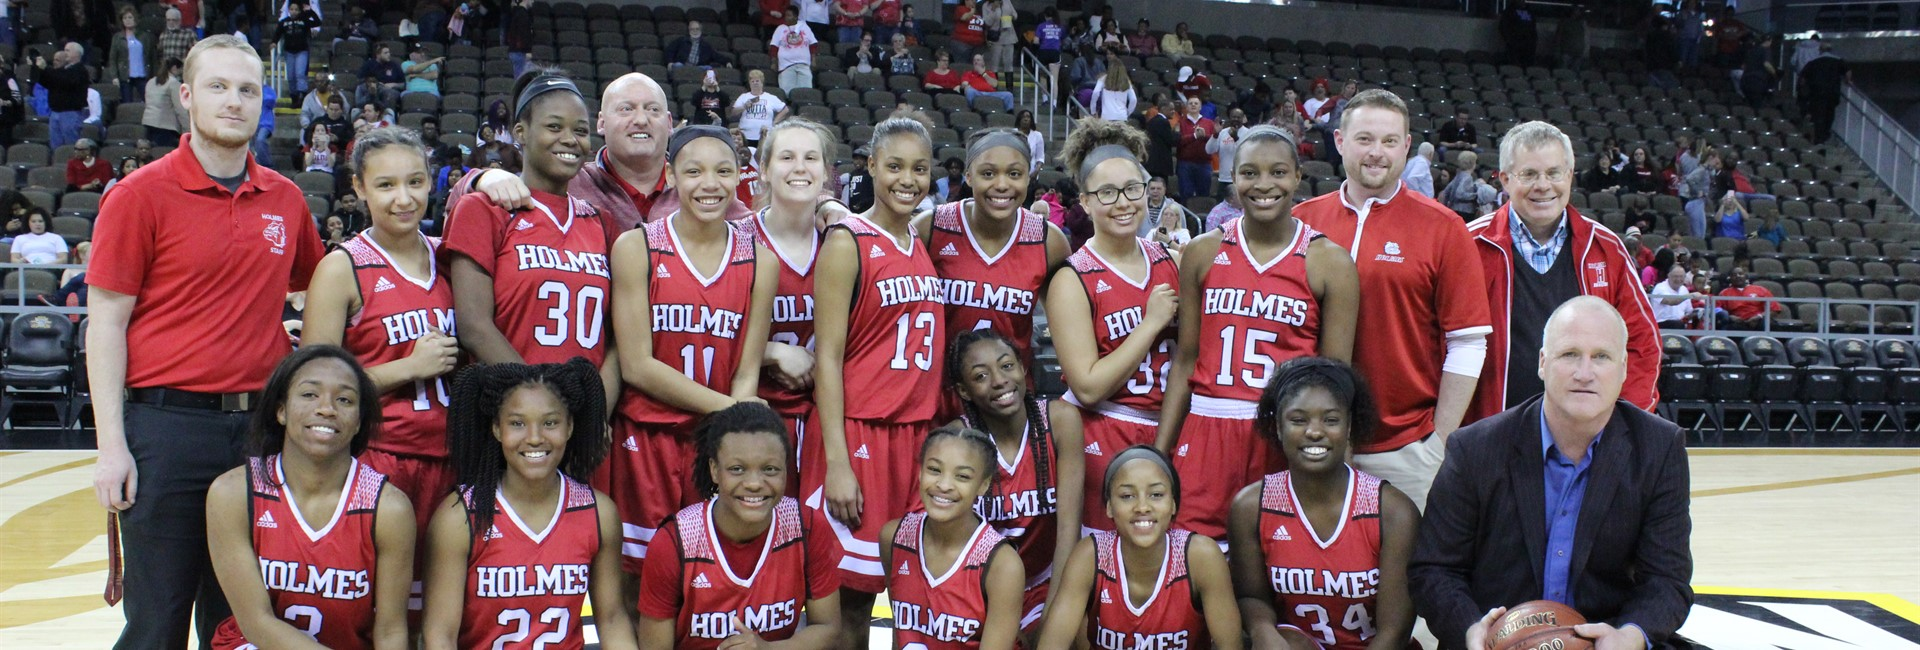 Holmes Lady Bulldogs are Ninth Region Champions!